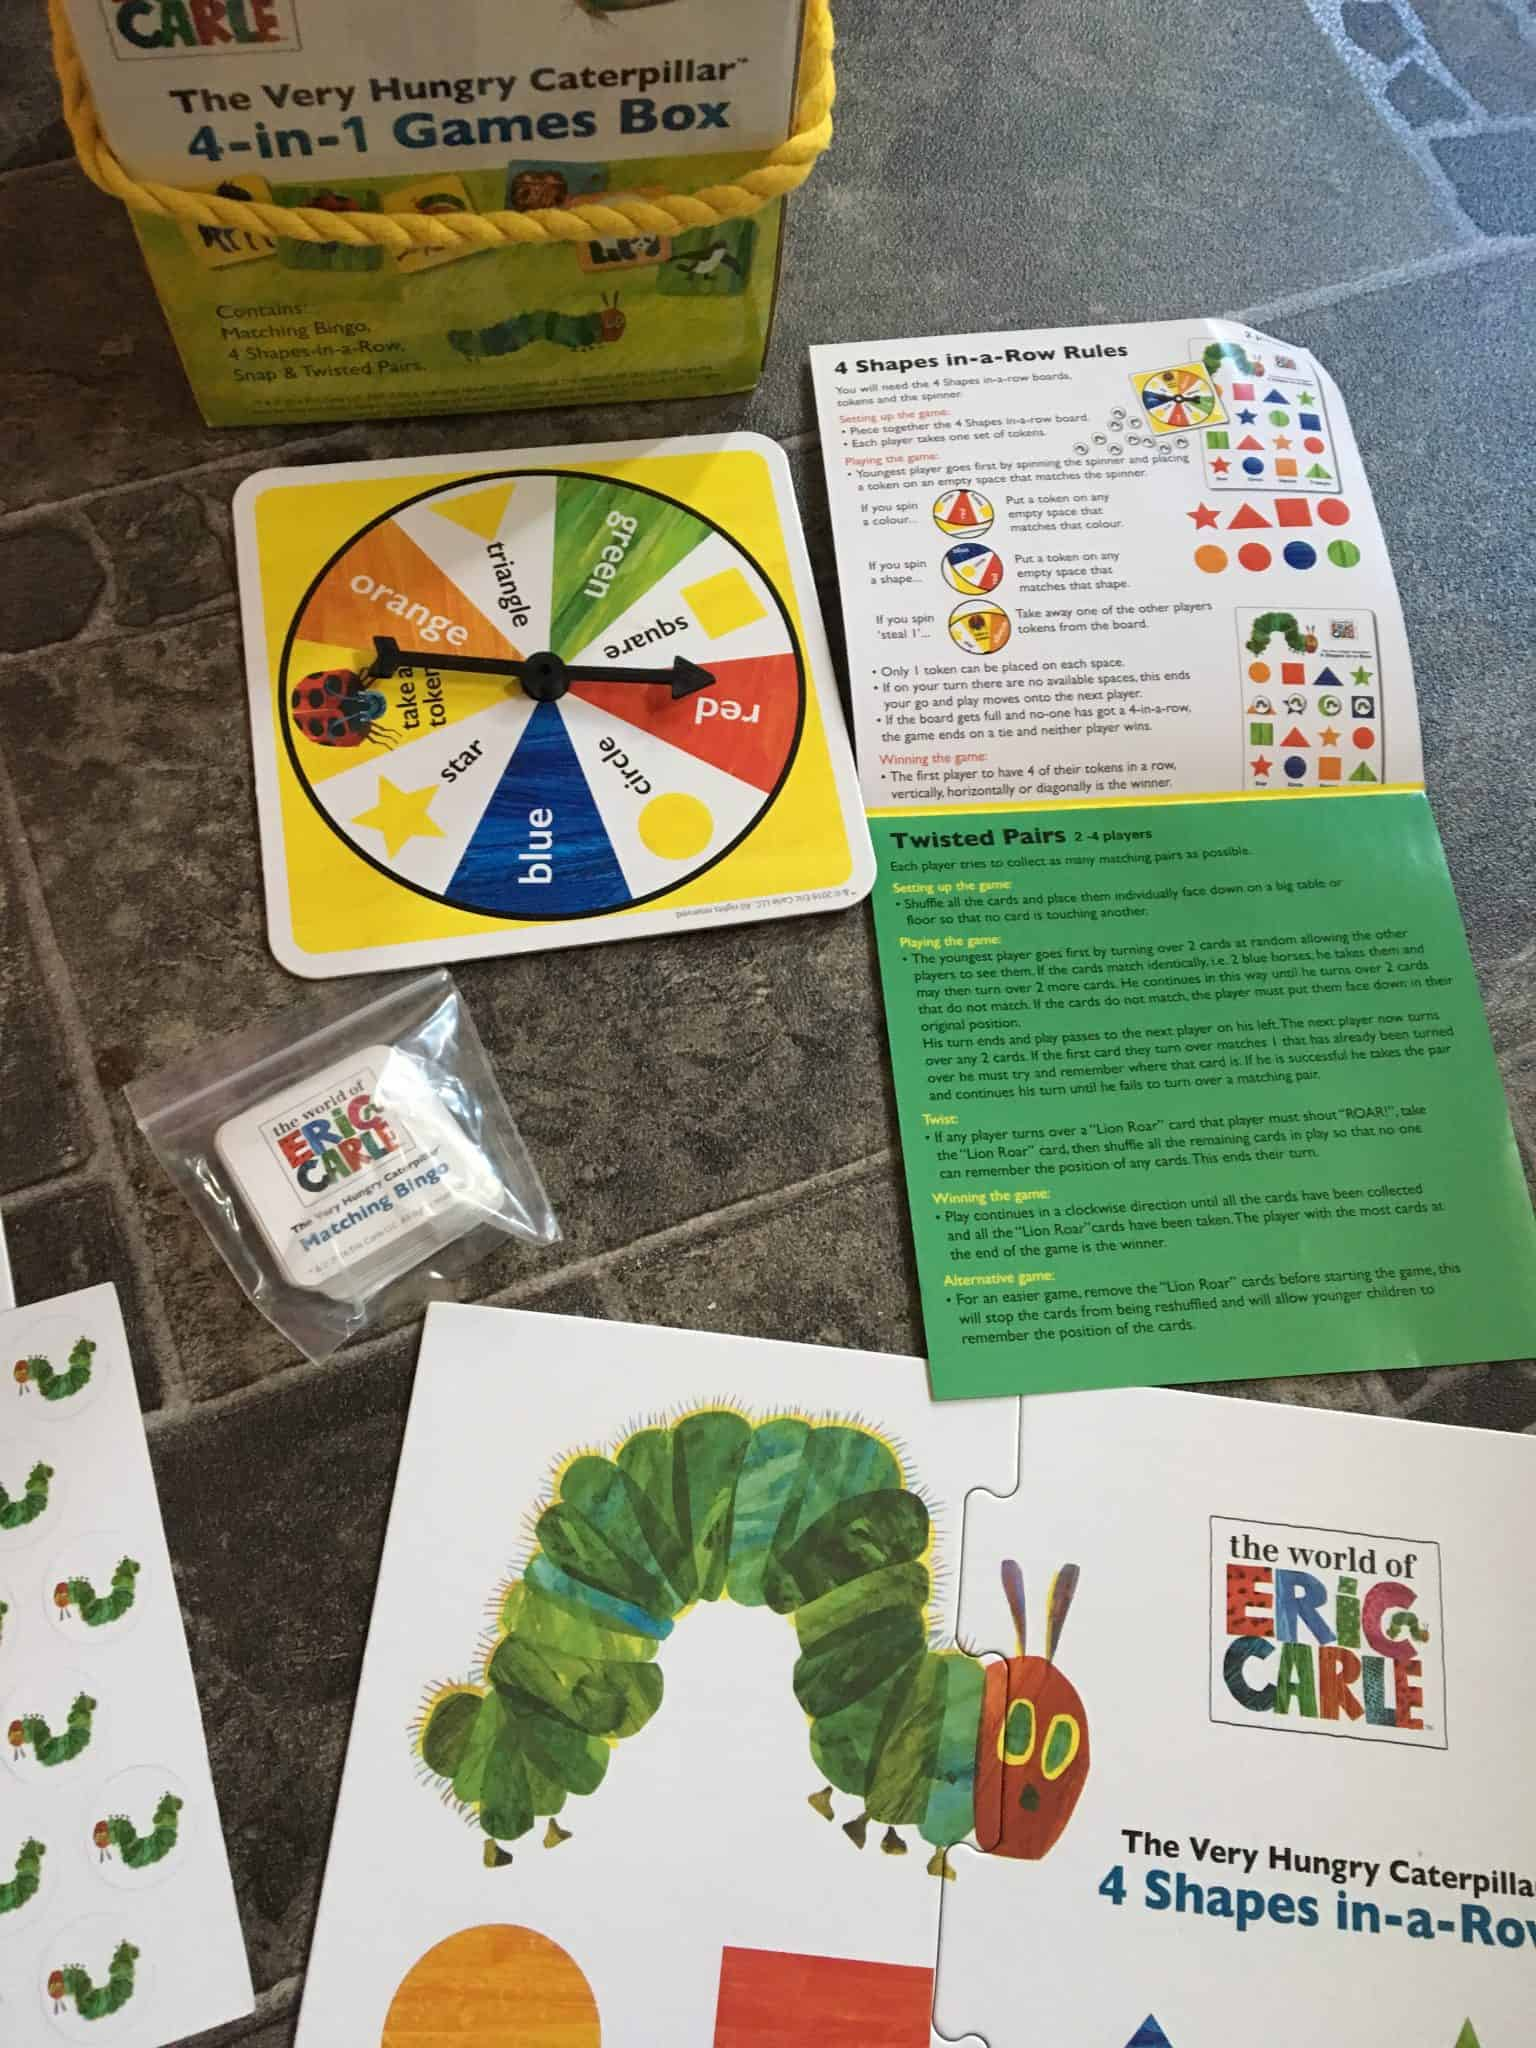 The Very Hungry Caterpillar 4-in1 games box